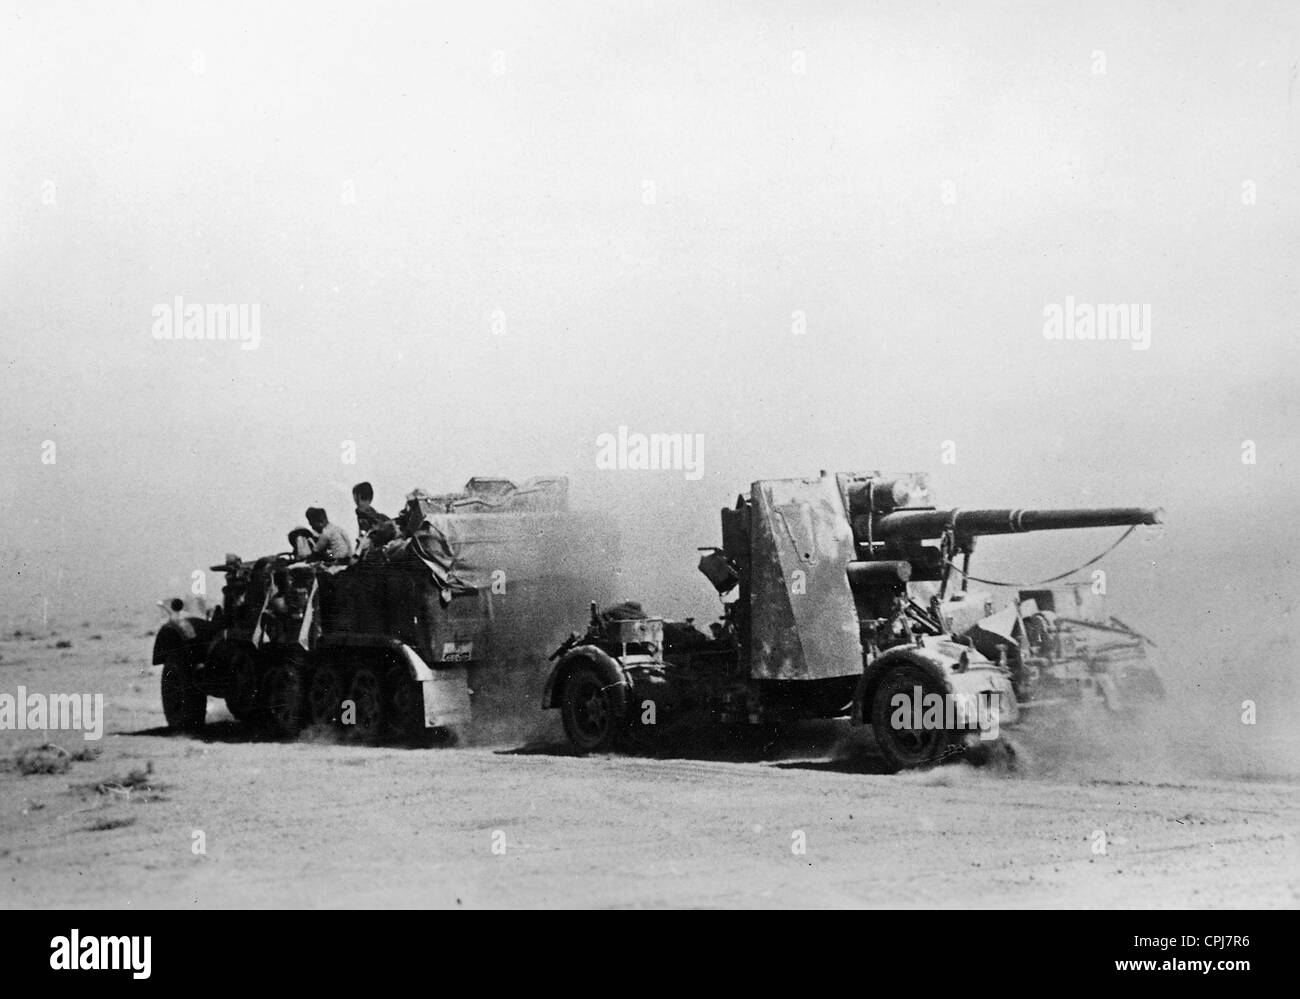 German 8.8cm Flak in North Africa, 1942 - Stock Image